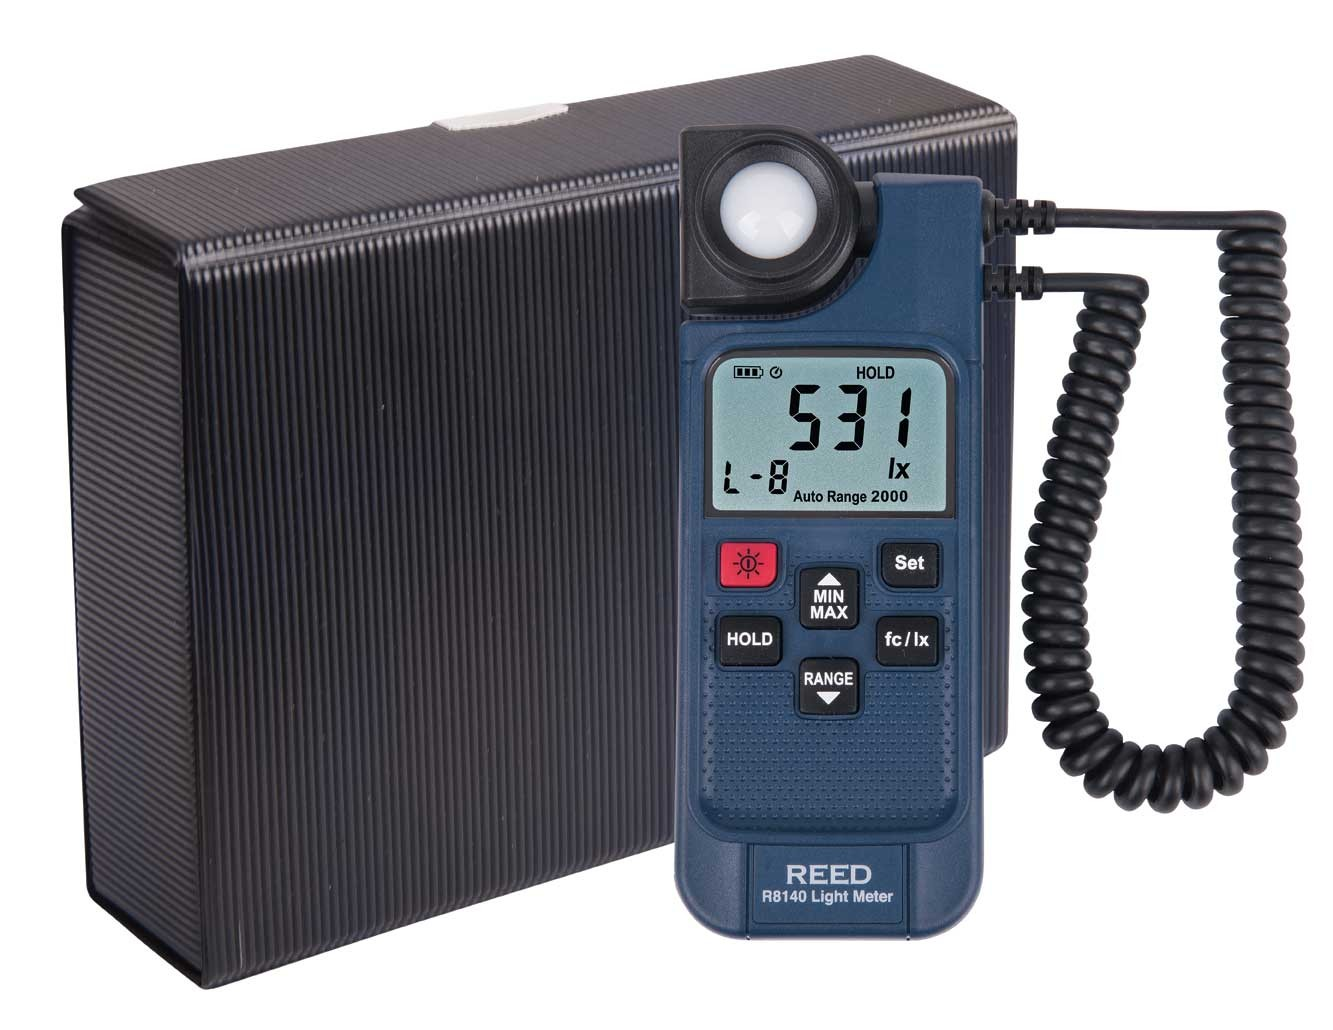 REED R8140 LED Light Meter-Included